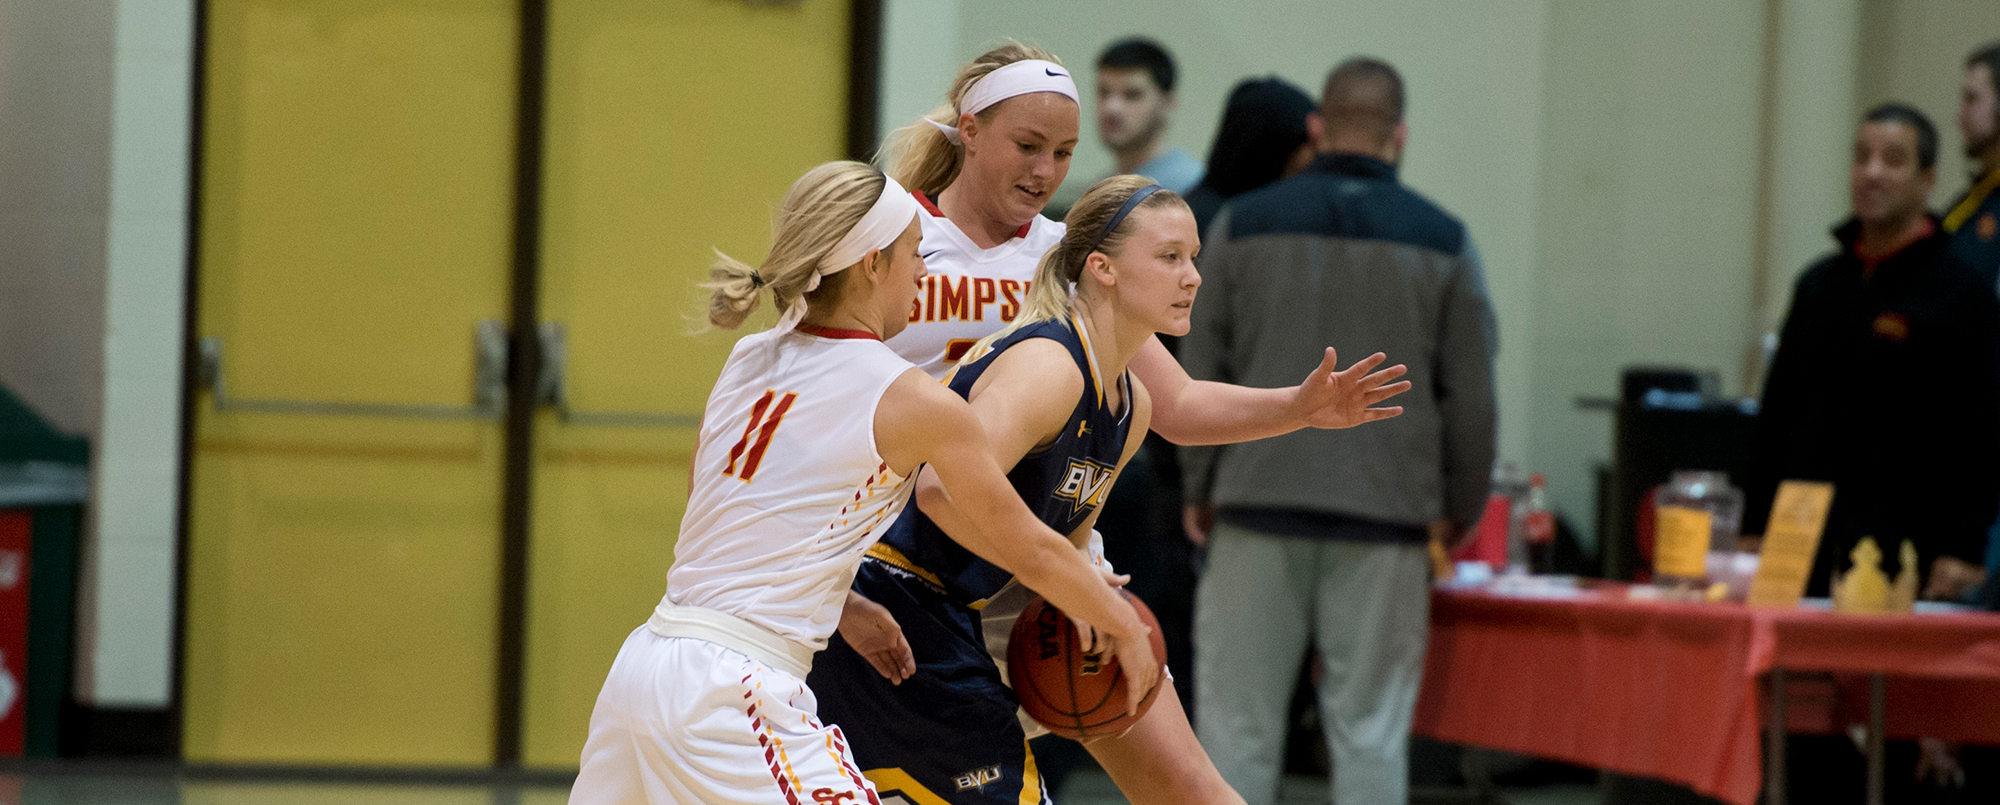 WBB Preview: Storm travel to Dubuque looking to get back on track